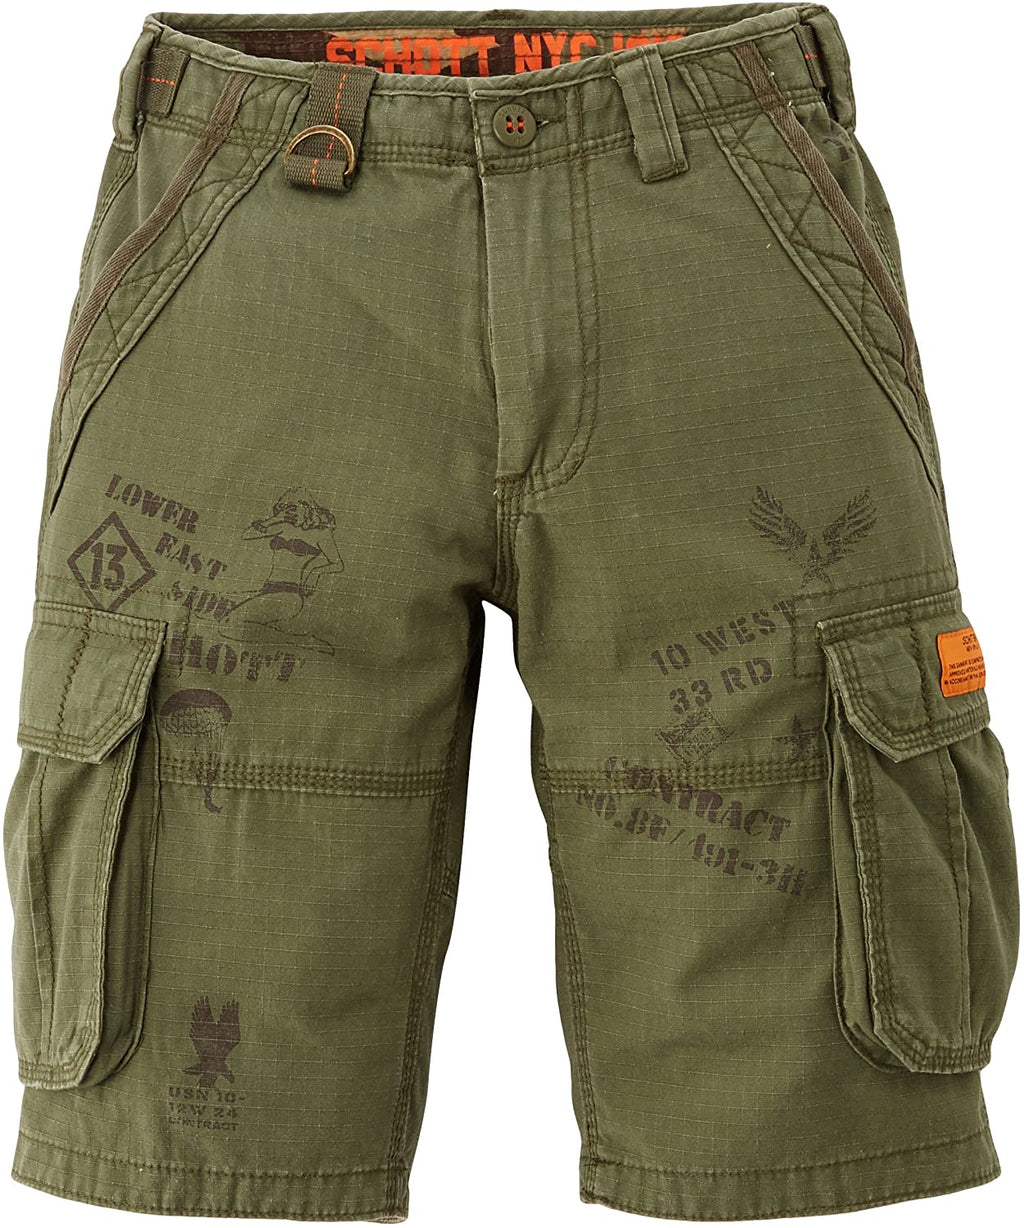 Shorts TRFIGHTERB30